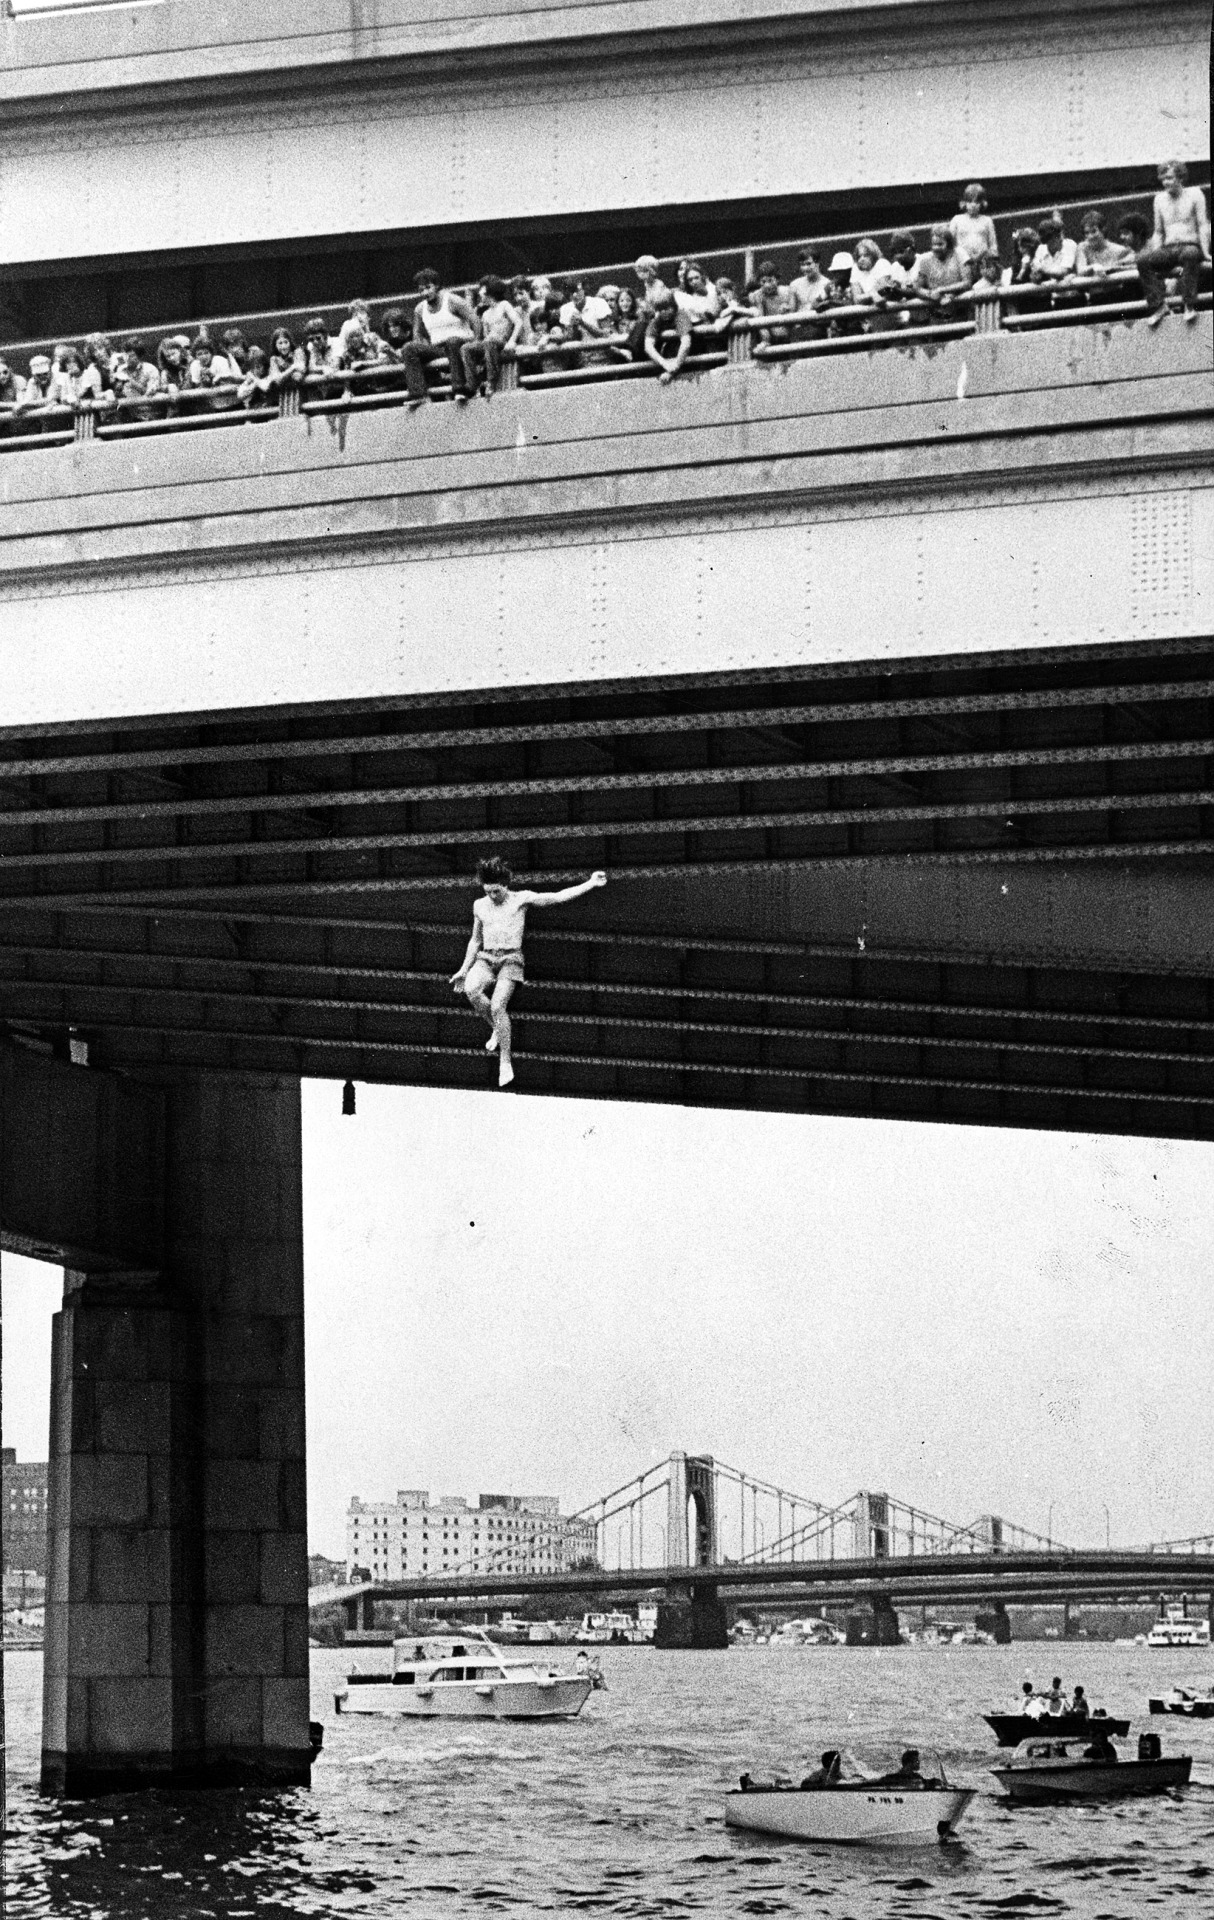 Bridge Jumpers (Photo by Anthony Kaminski, Pittsburgh Press).